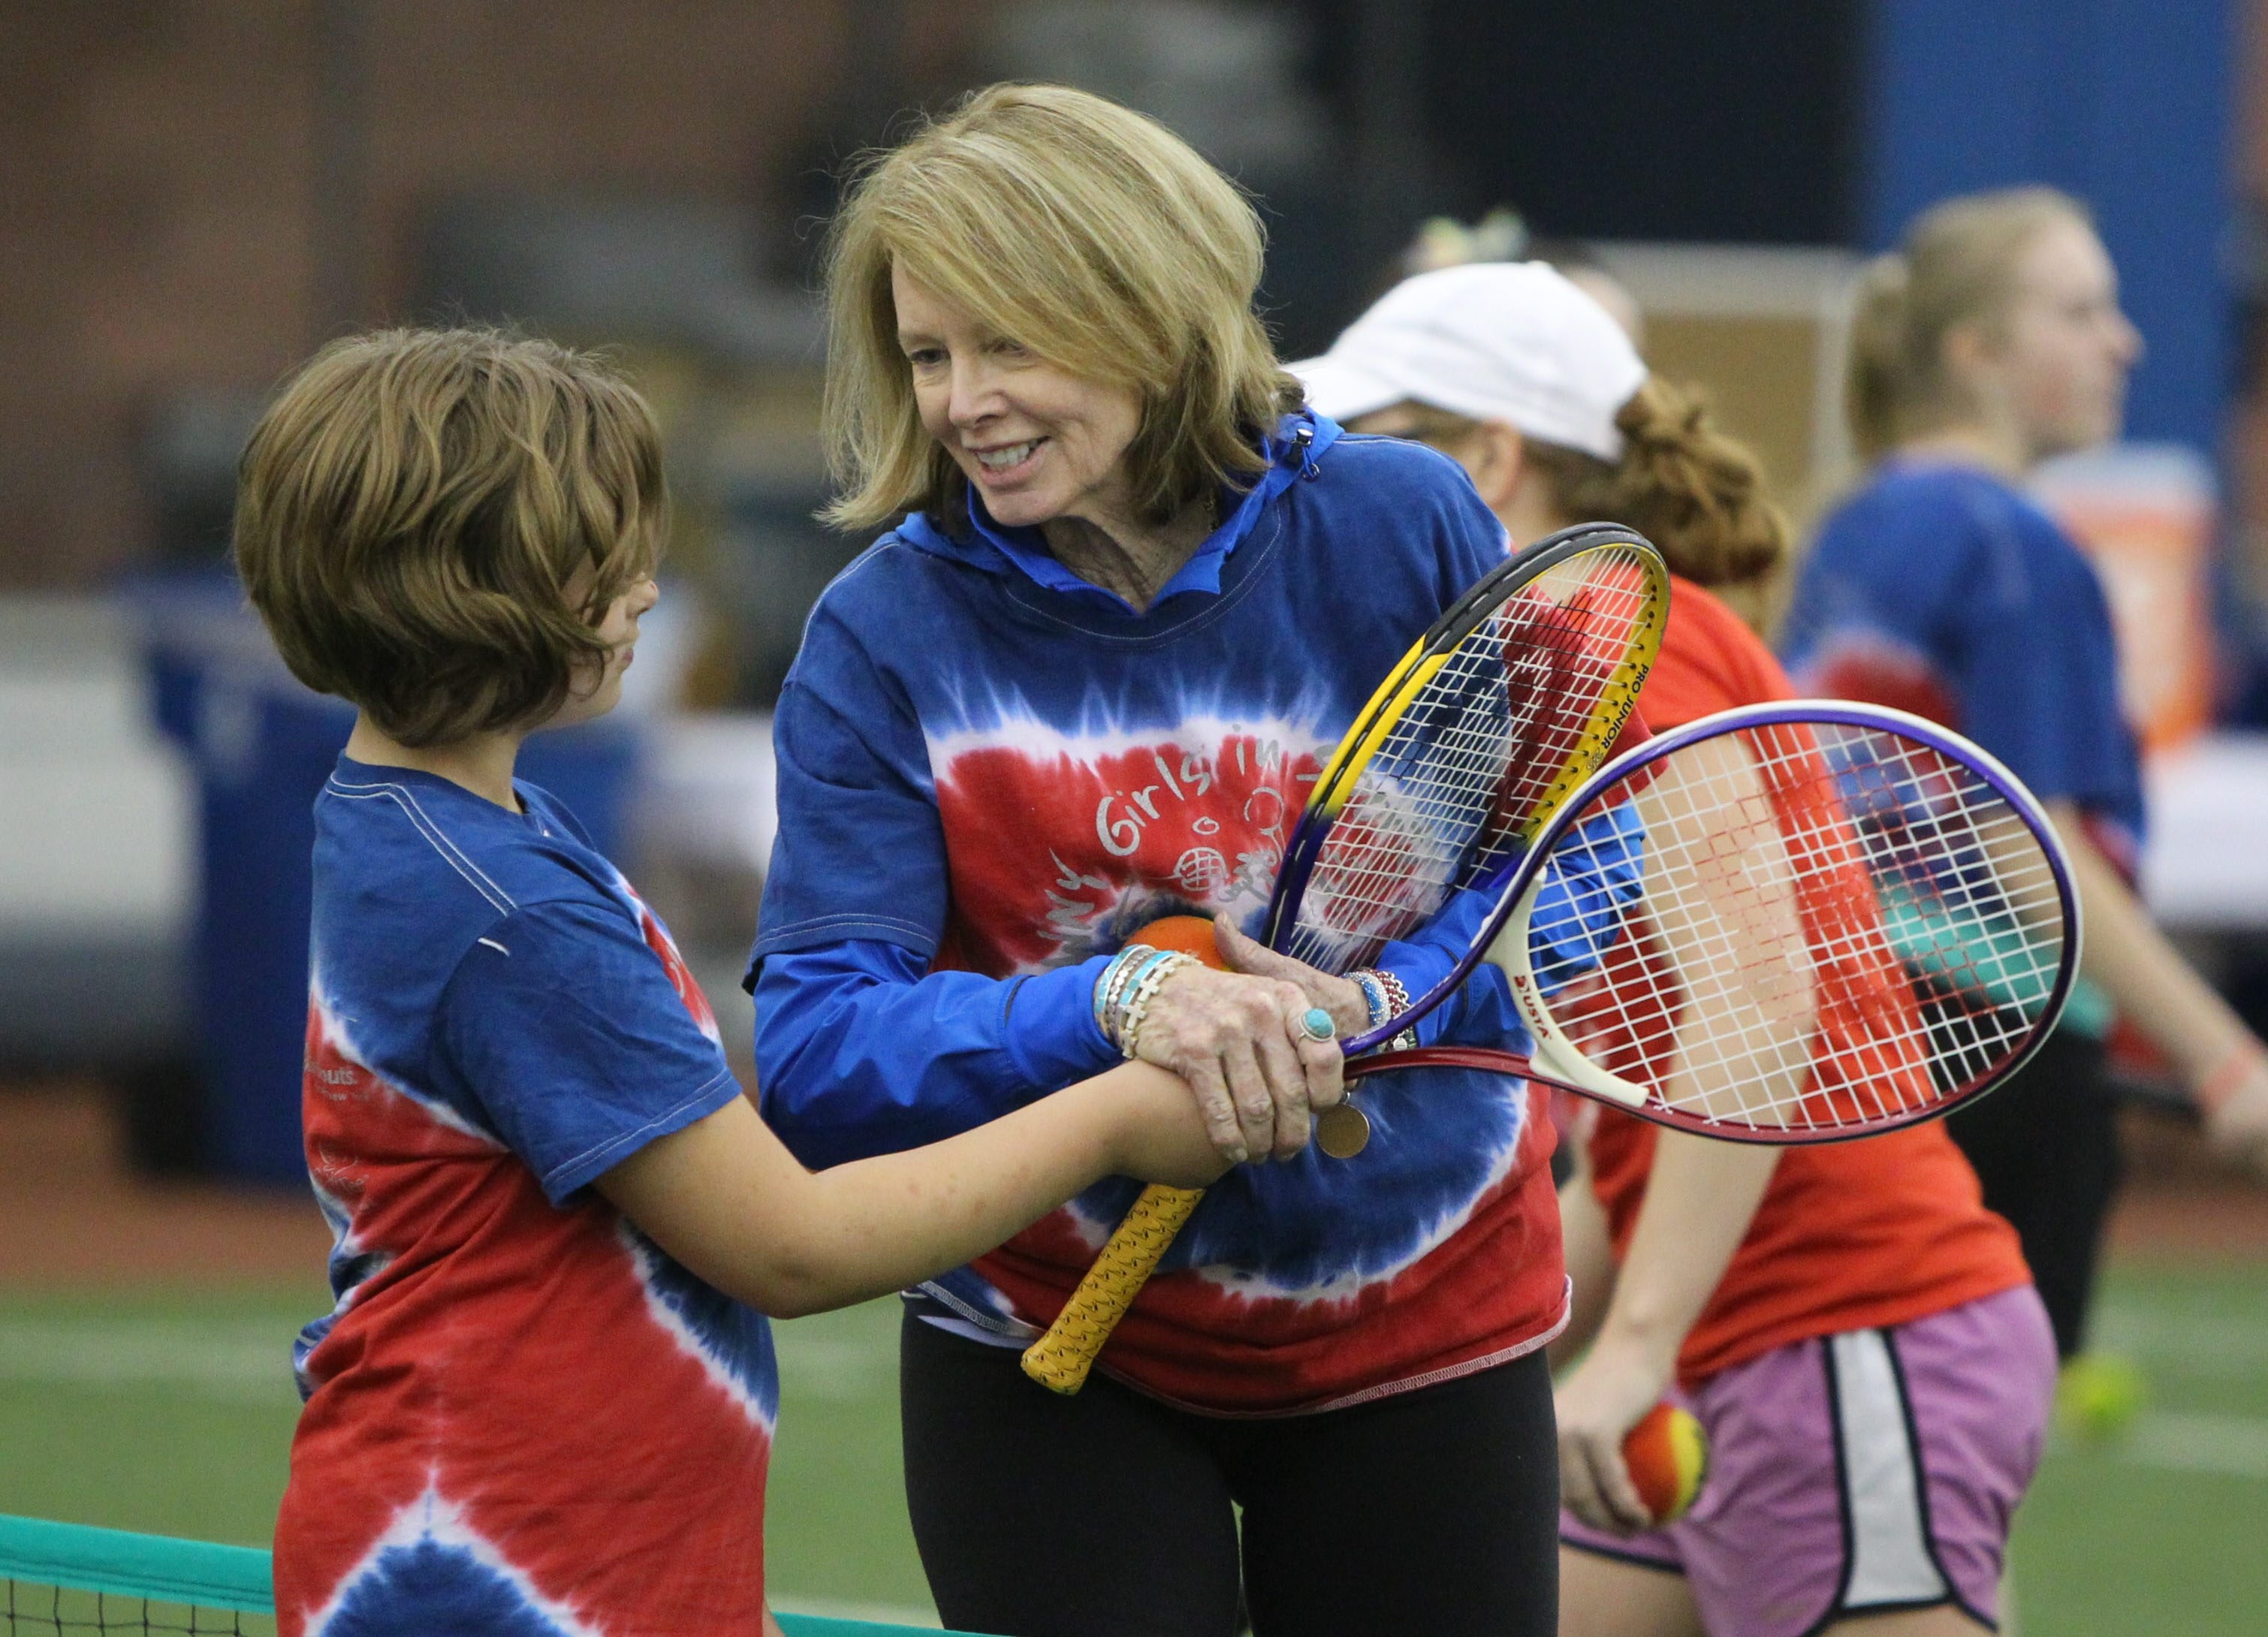 Mary Wilson works with girls from city schools during the semi-annual Western New York Girls in Sports Clinic on Saturday at the Buffalo Bills' field house in Orchard Park.